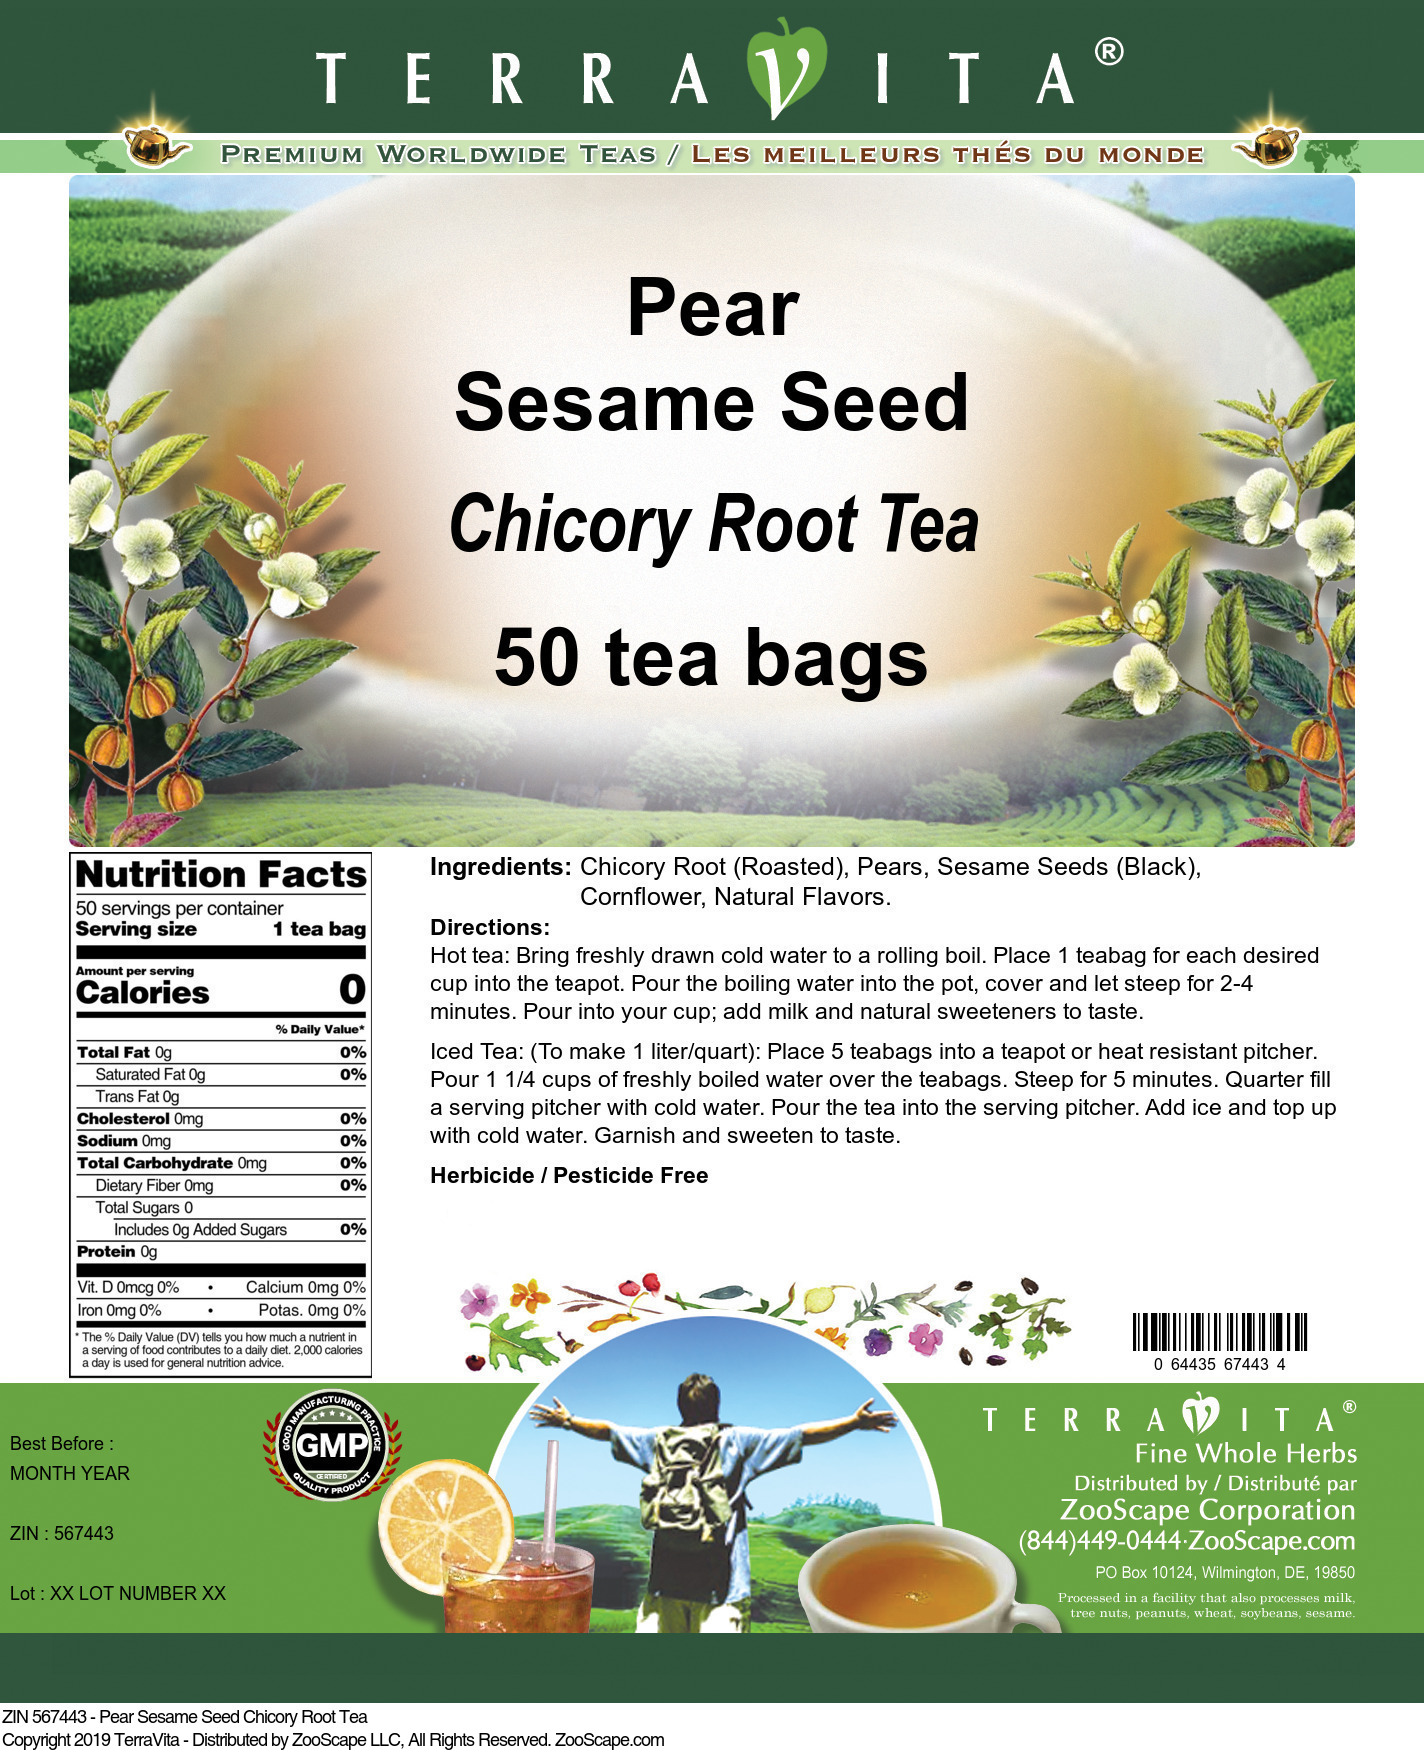 Pear Sesame Seed Chicory Root